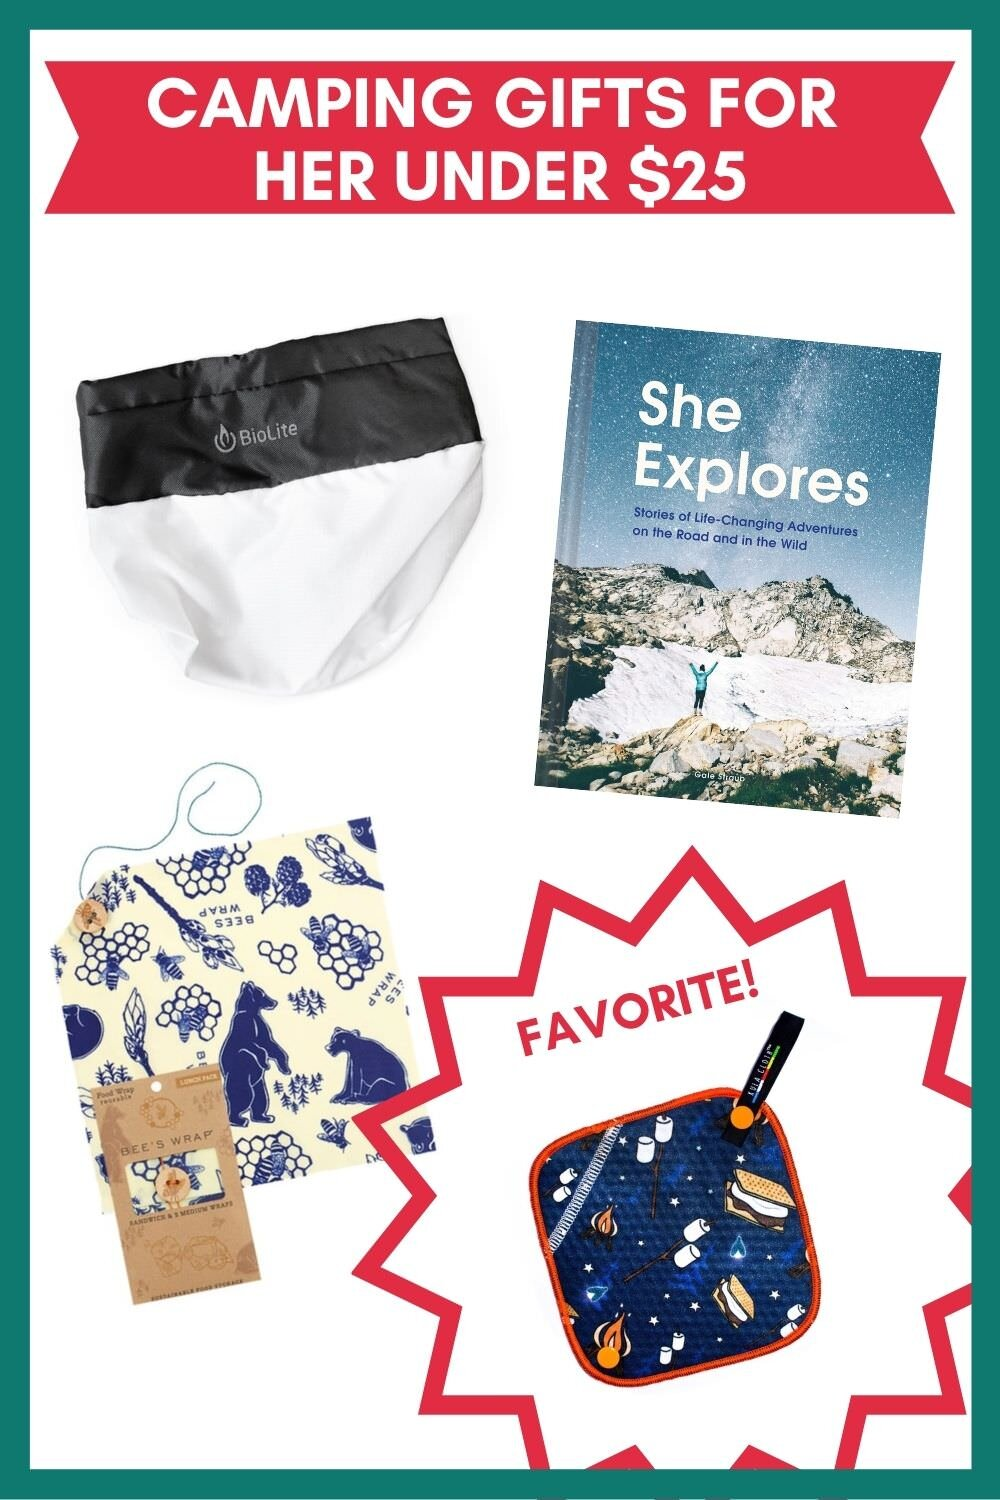 Unique camping gifts for her under $25.